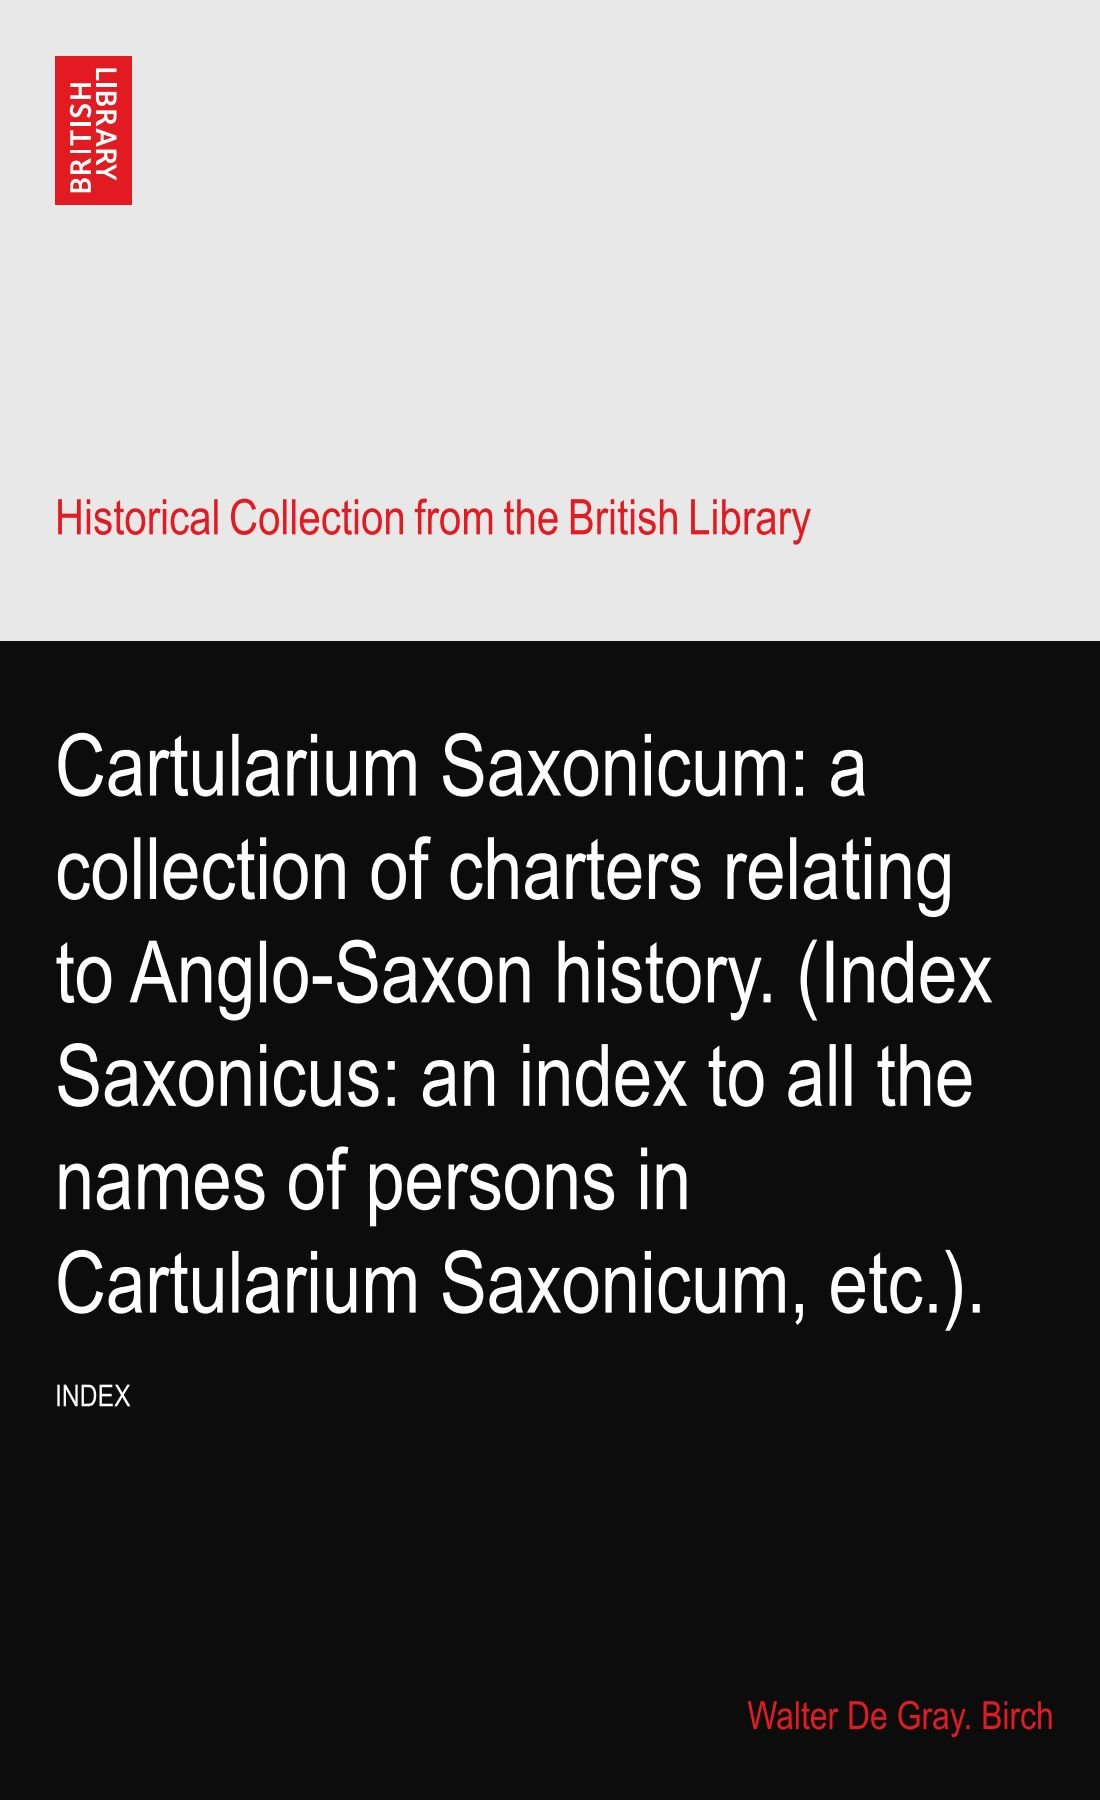 Cartularium Saxonicum: a collection of charters relating to Anglo-Saxon history. (Index Saxonicus: an index to all the names of persons in Cartularium Saxonicum, etc.). PDF